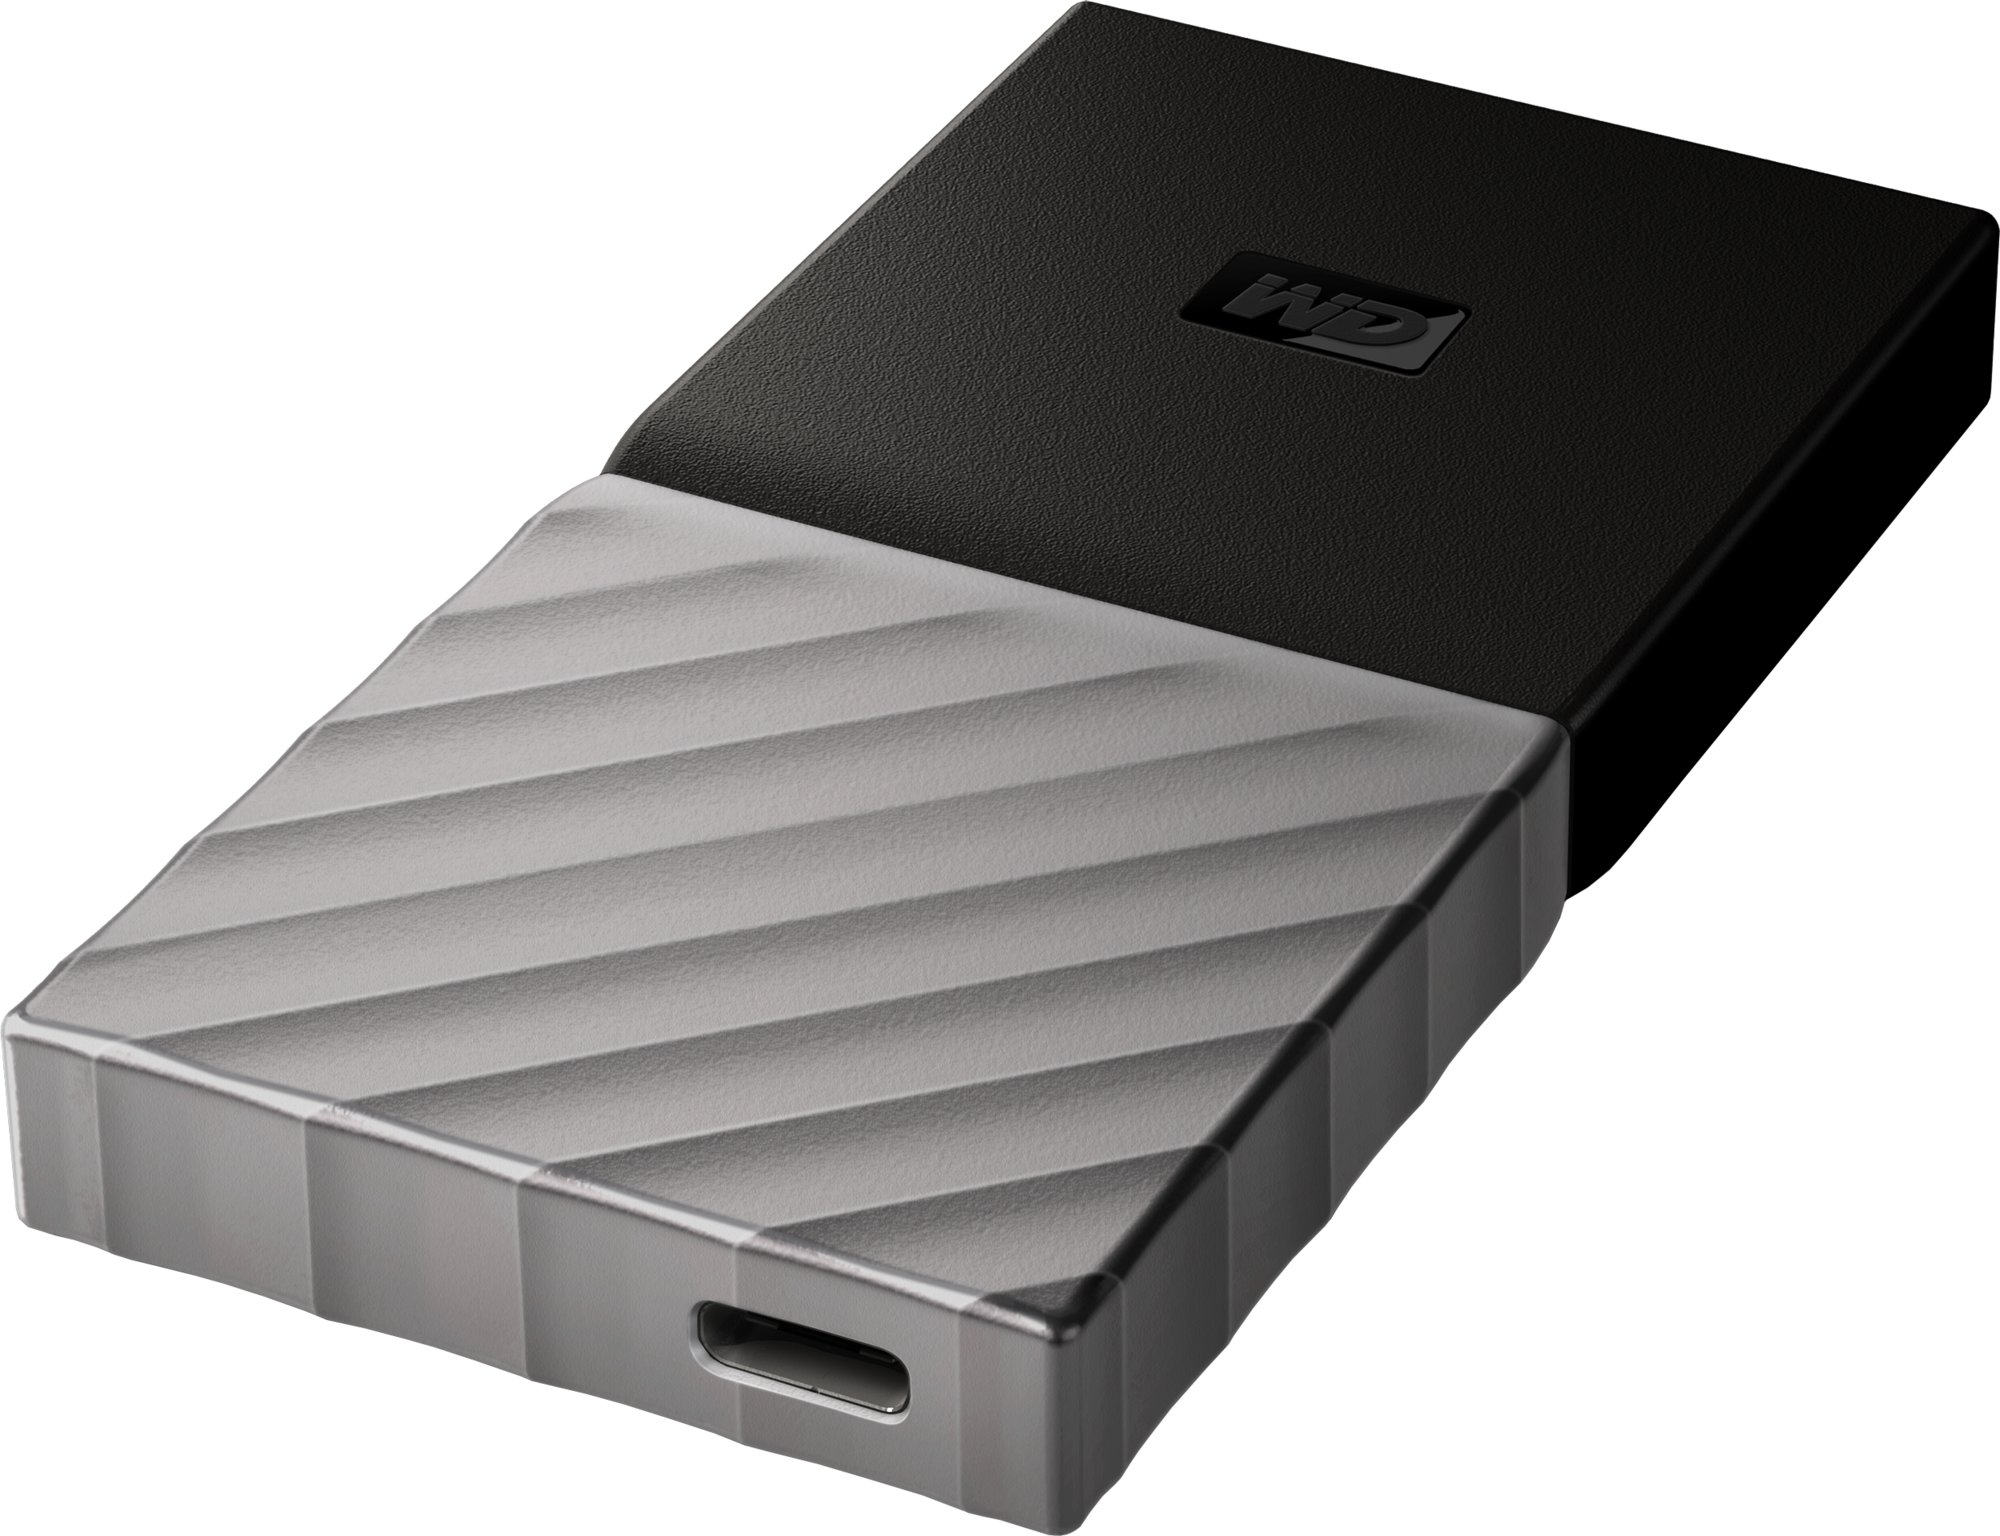 WD My Passport SSD 1TB Ext. USB3.1 Type C , Silver/Black